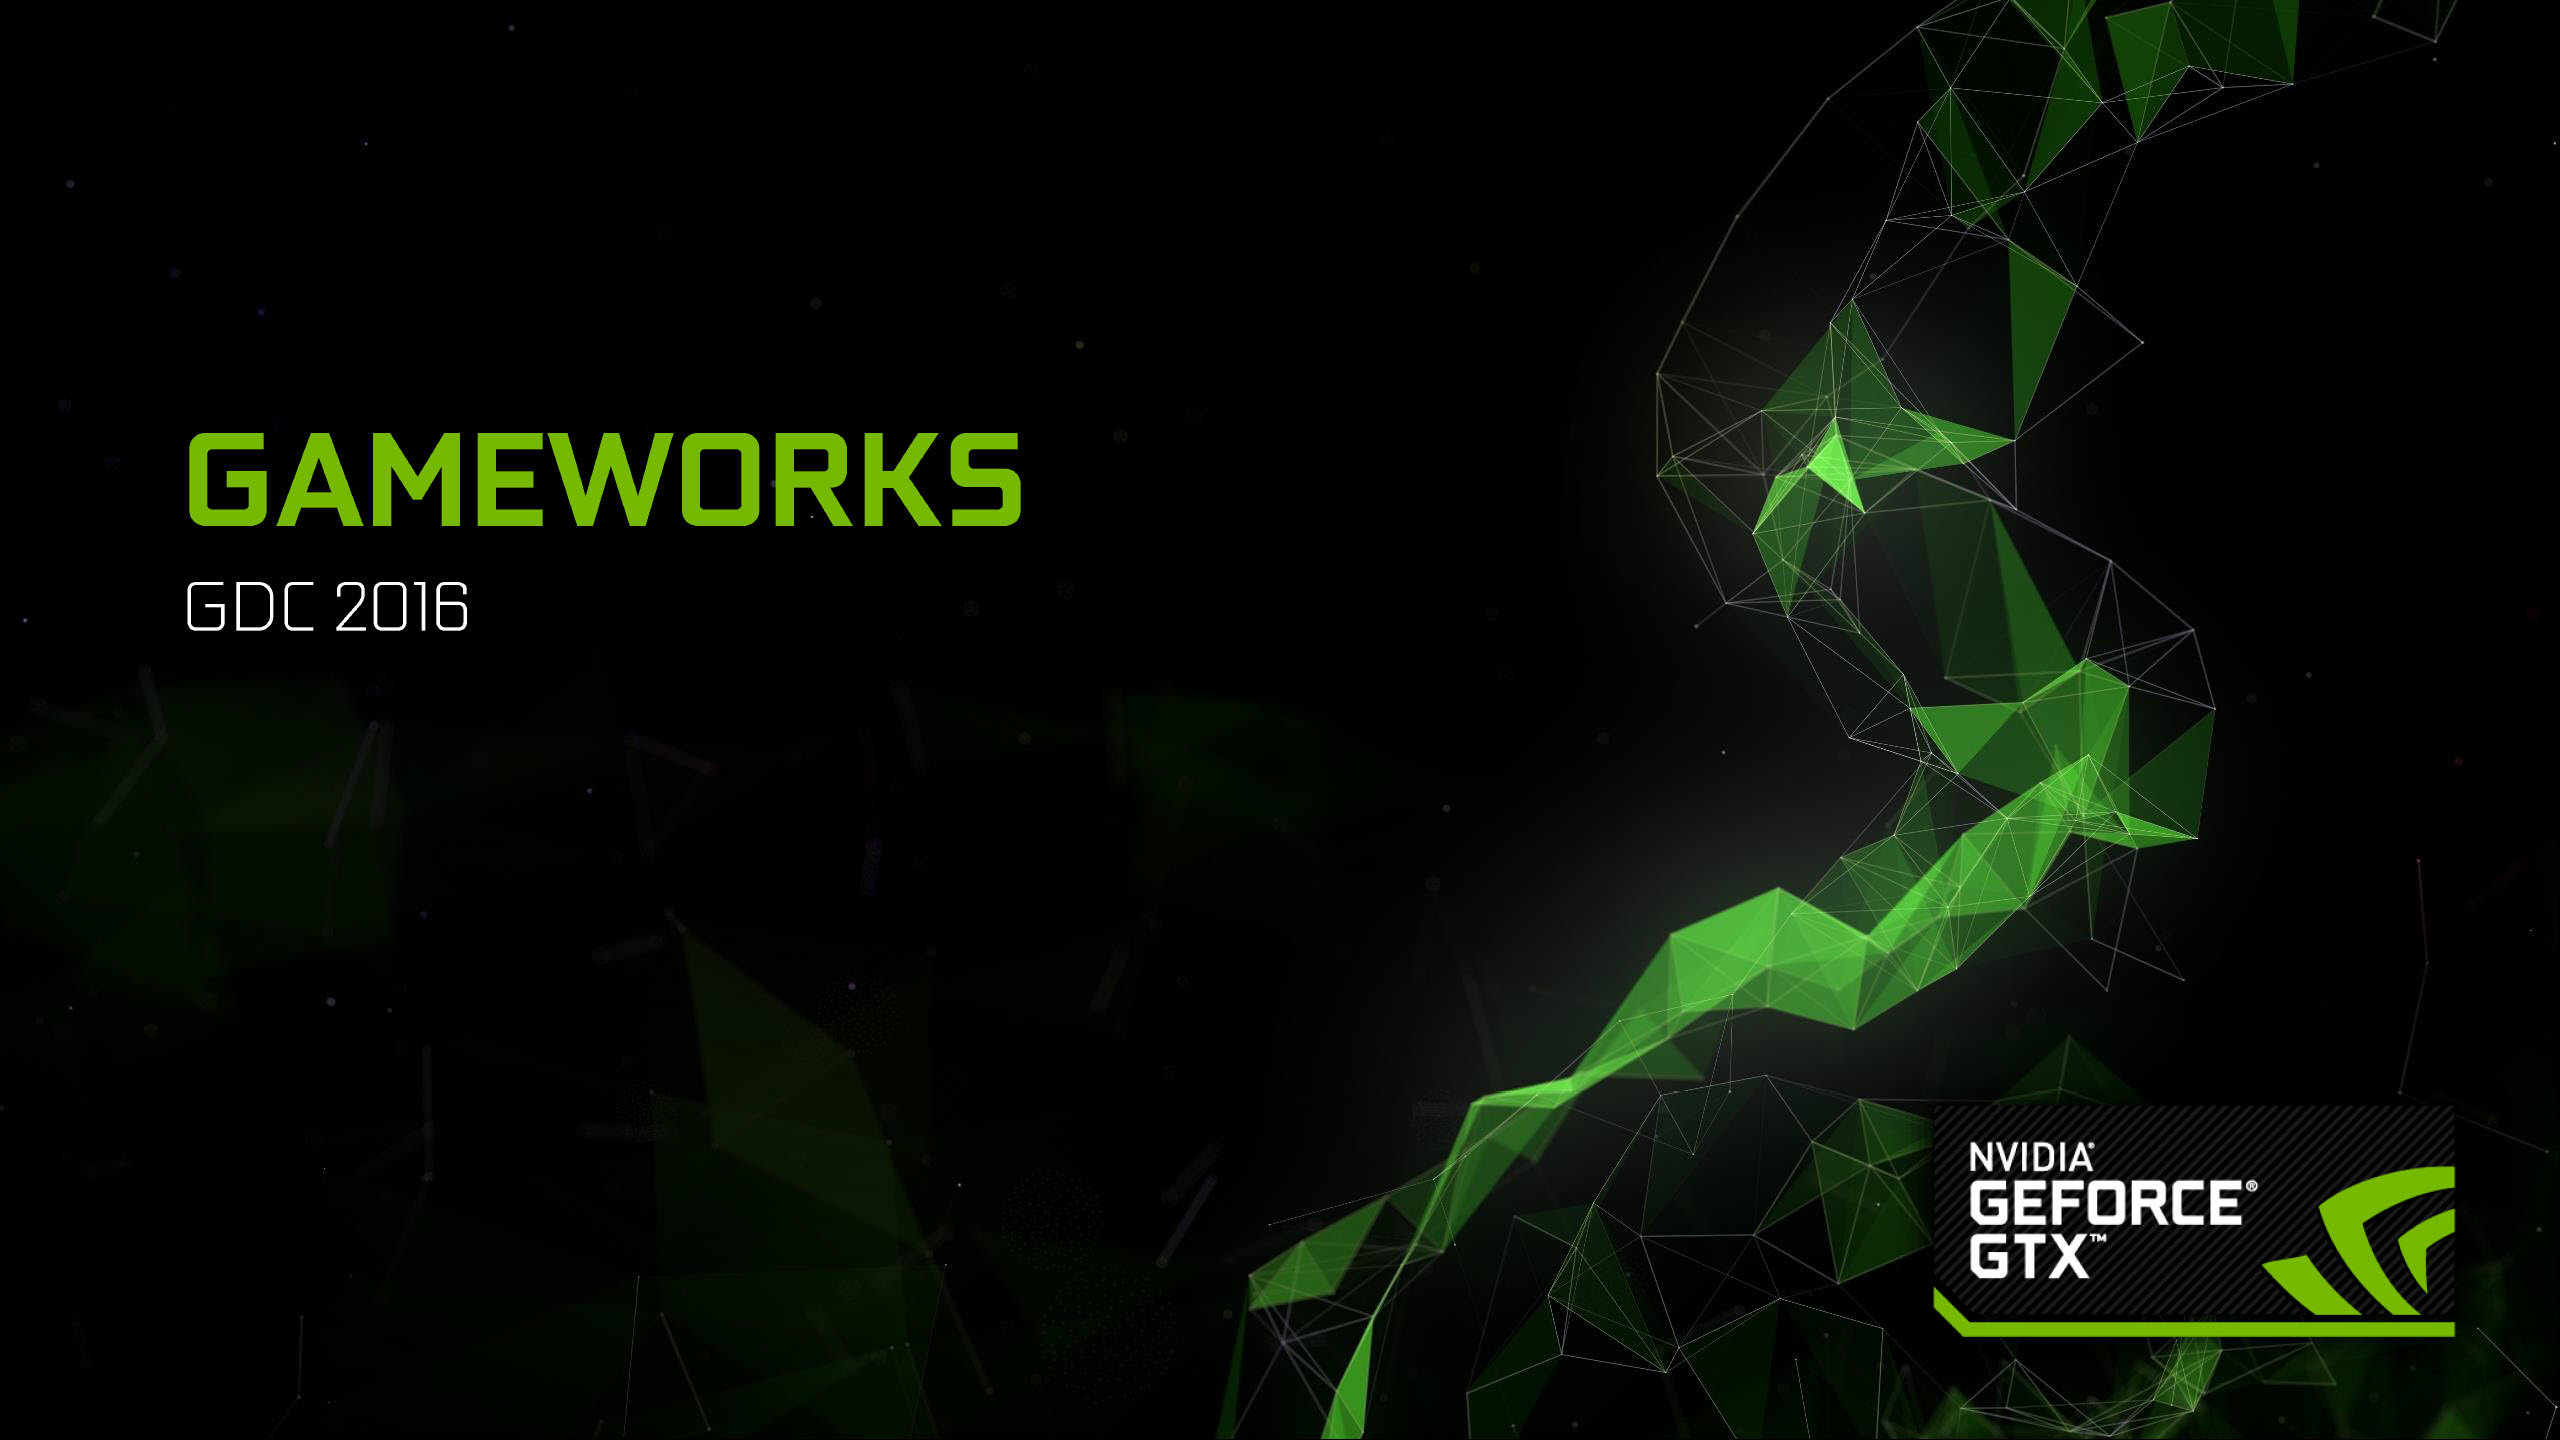 Unity Announces Support for NVIDIA VRWorks at GDC 2016 - Gameworks 3.1 SDK Also Released